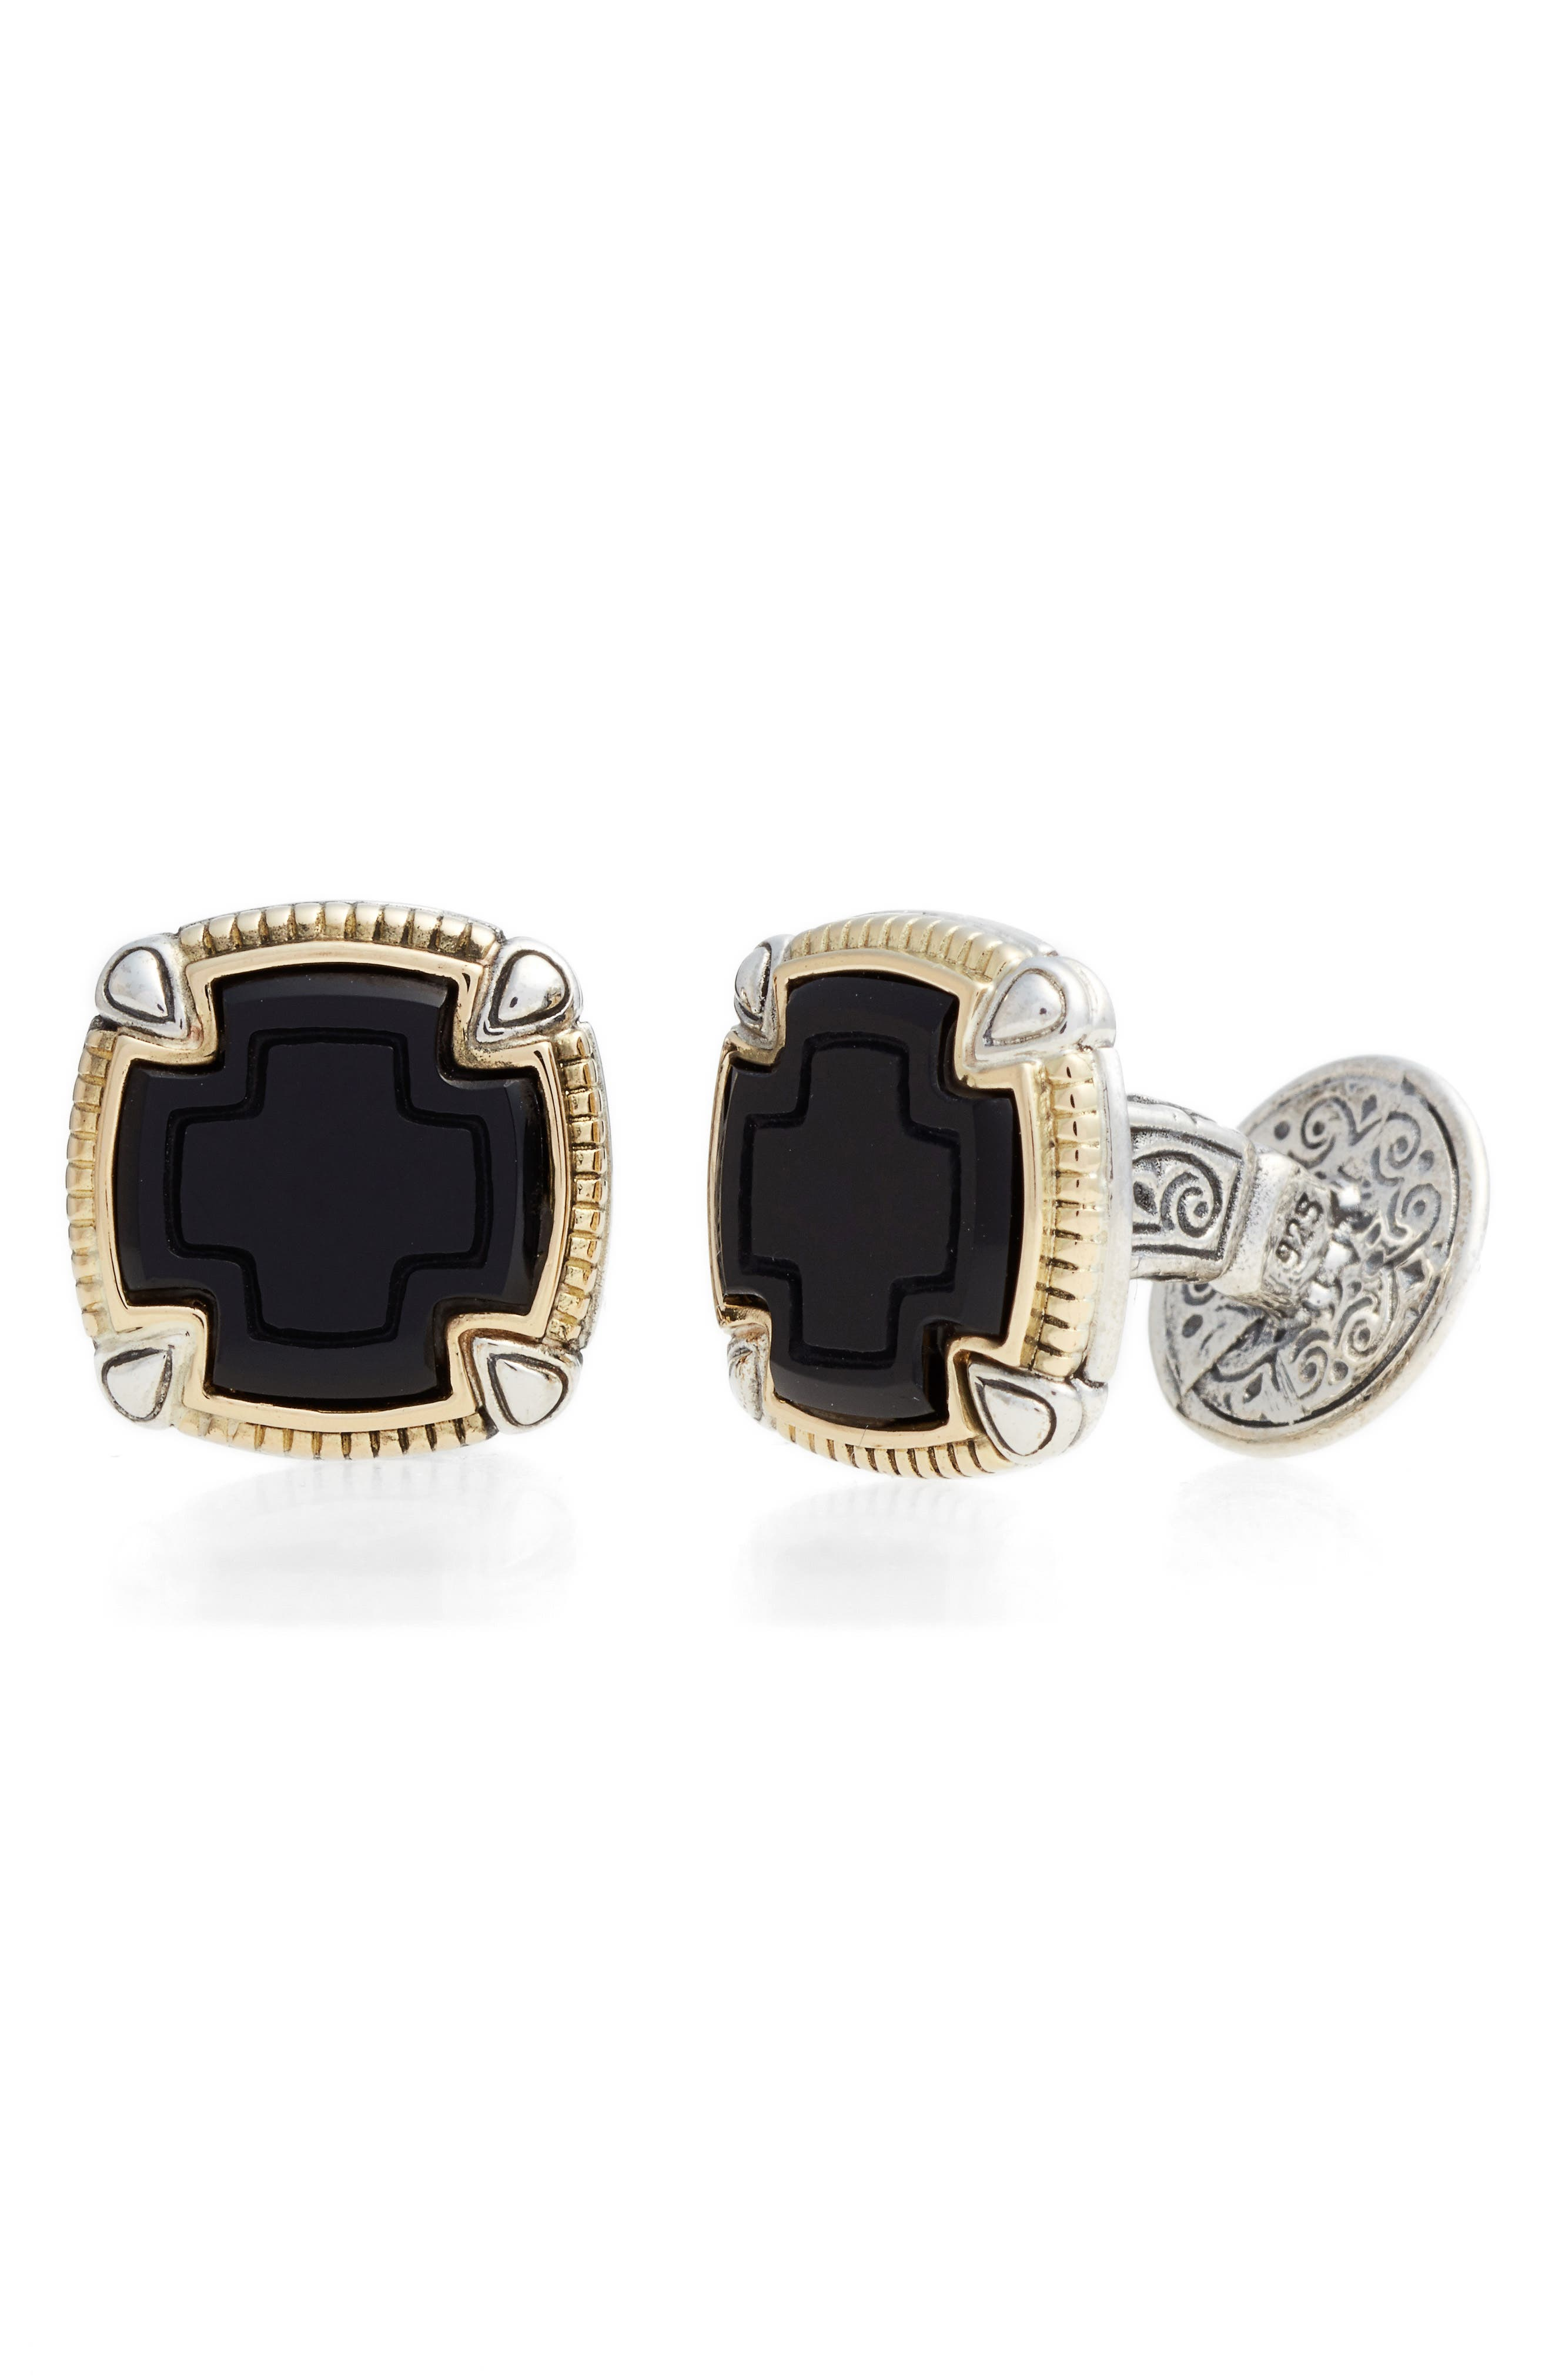 Ares Square Cuff Links,                         Main,                         color, Silver/ Gold/ Onyx